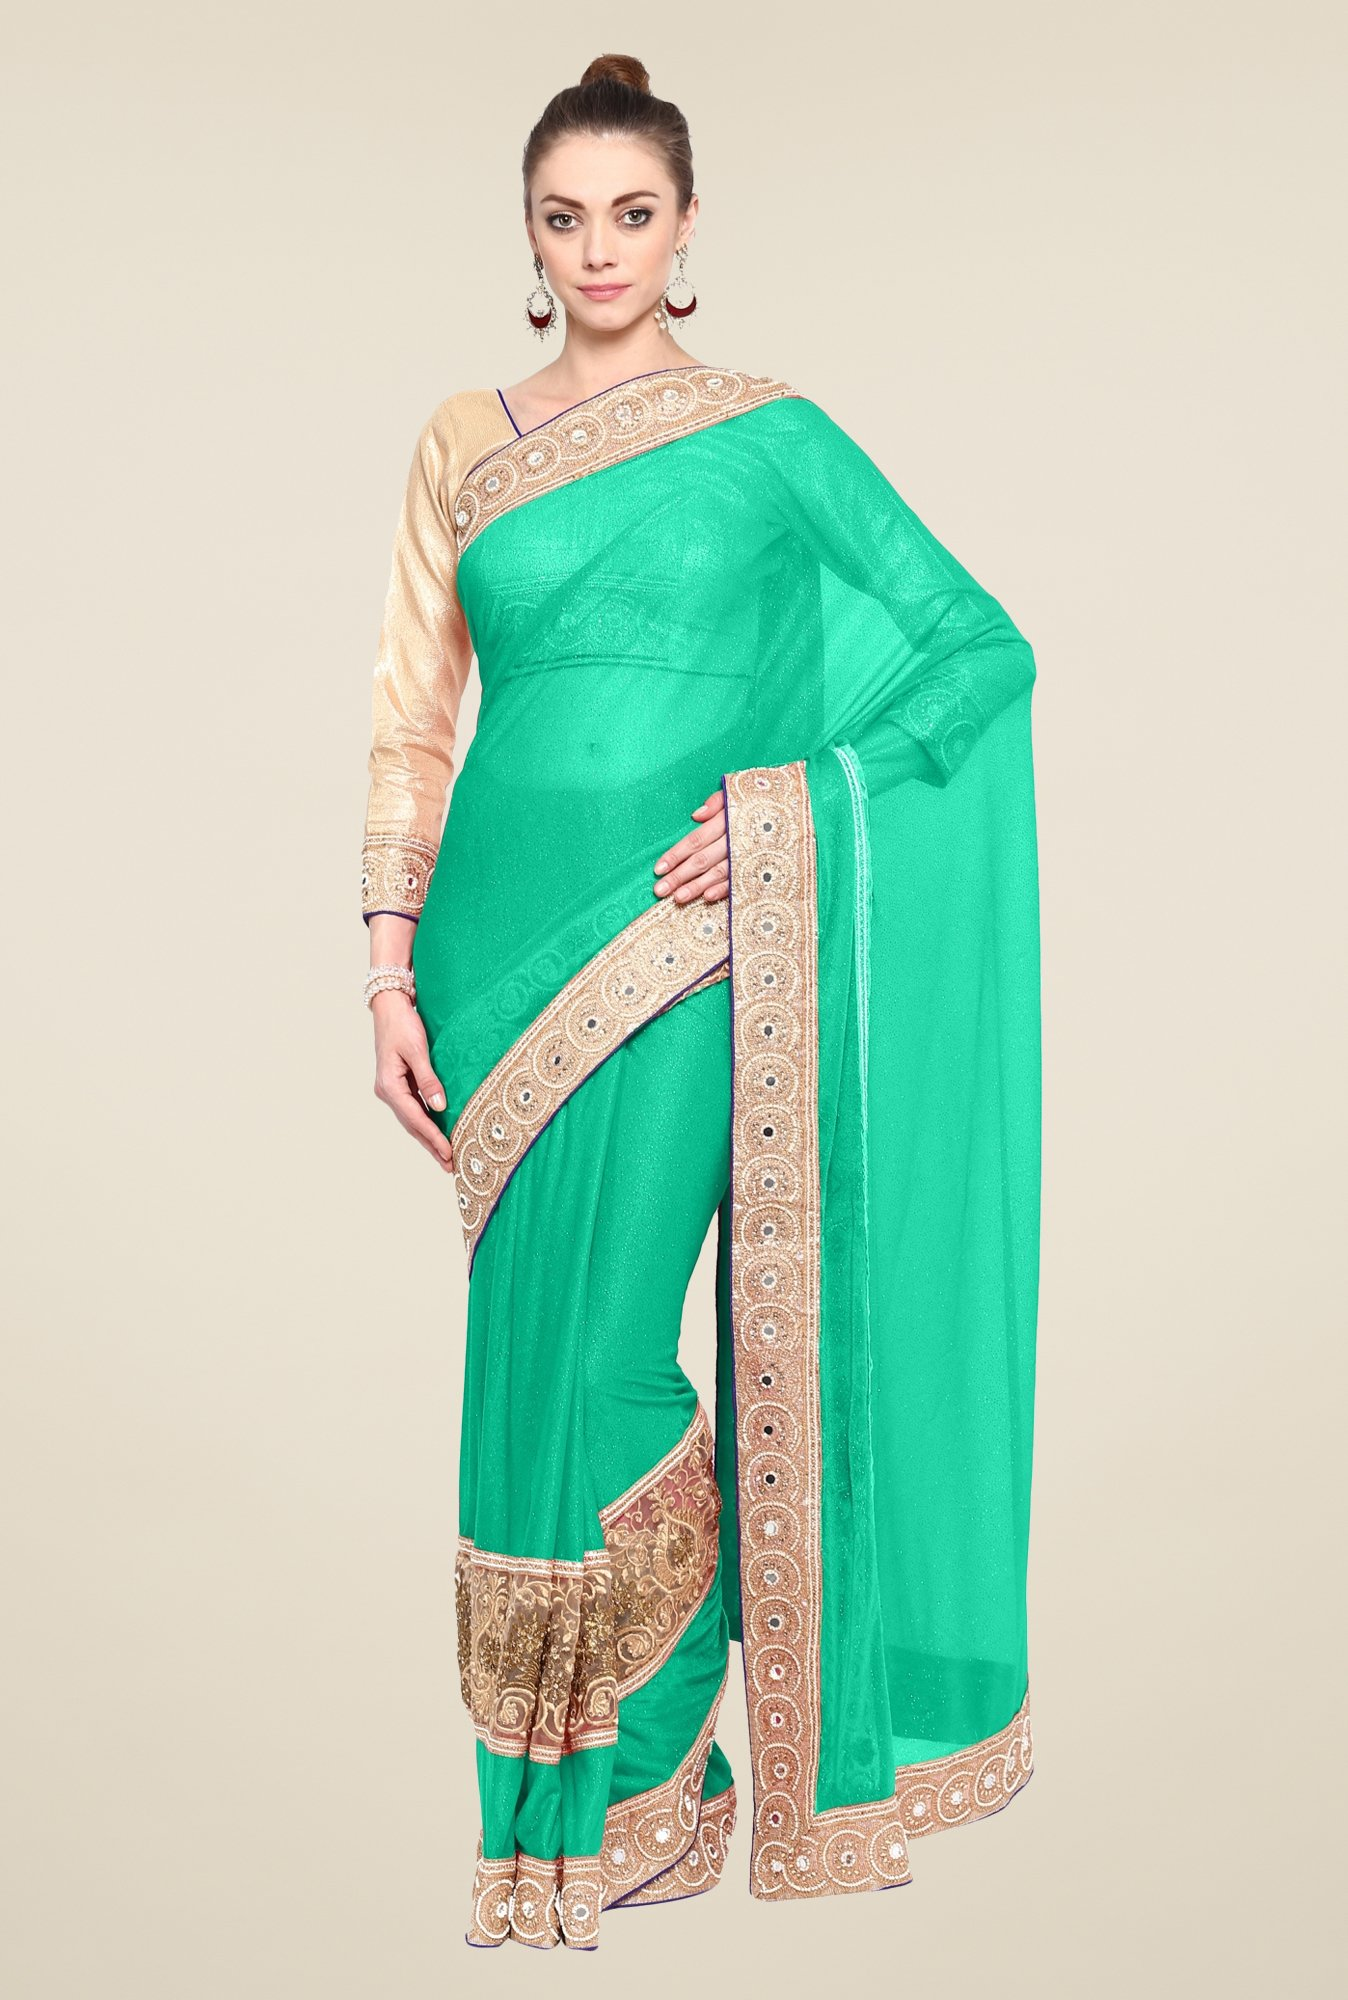 Triveni Turquoise Embroidered Lycra Saree